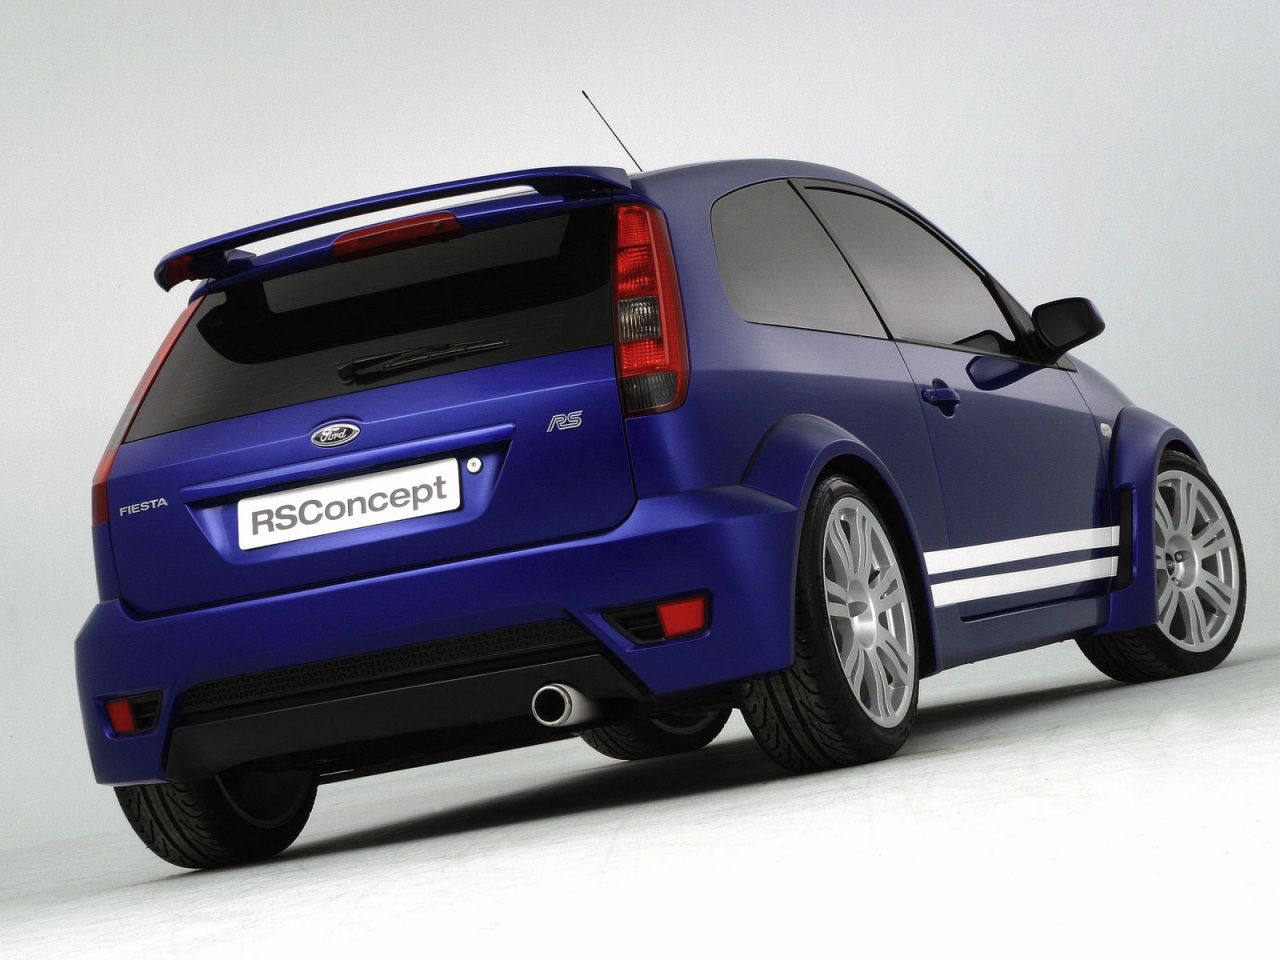 2004 ford fiesta rs automotive ford fiesta st ford. Black Bedroom Furniture Sets. Home Design Ideas